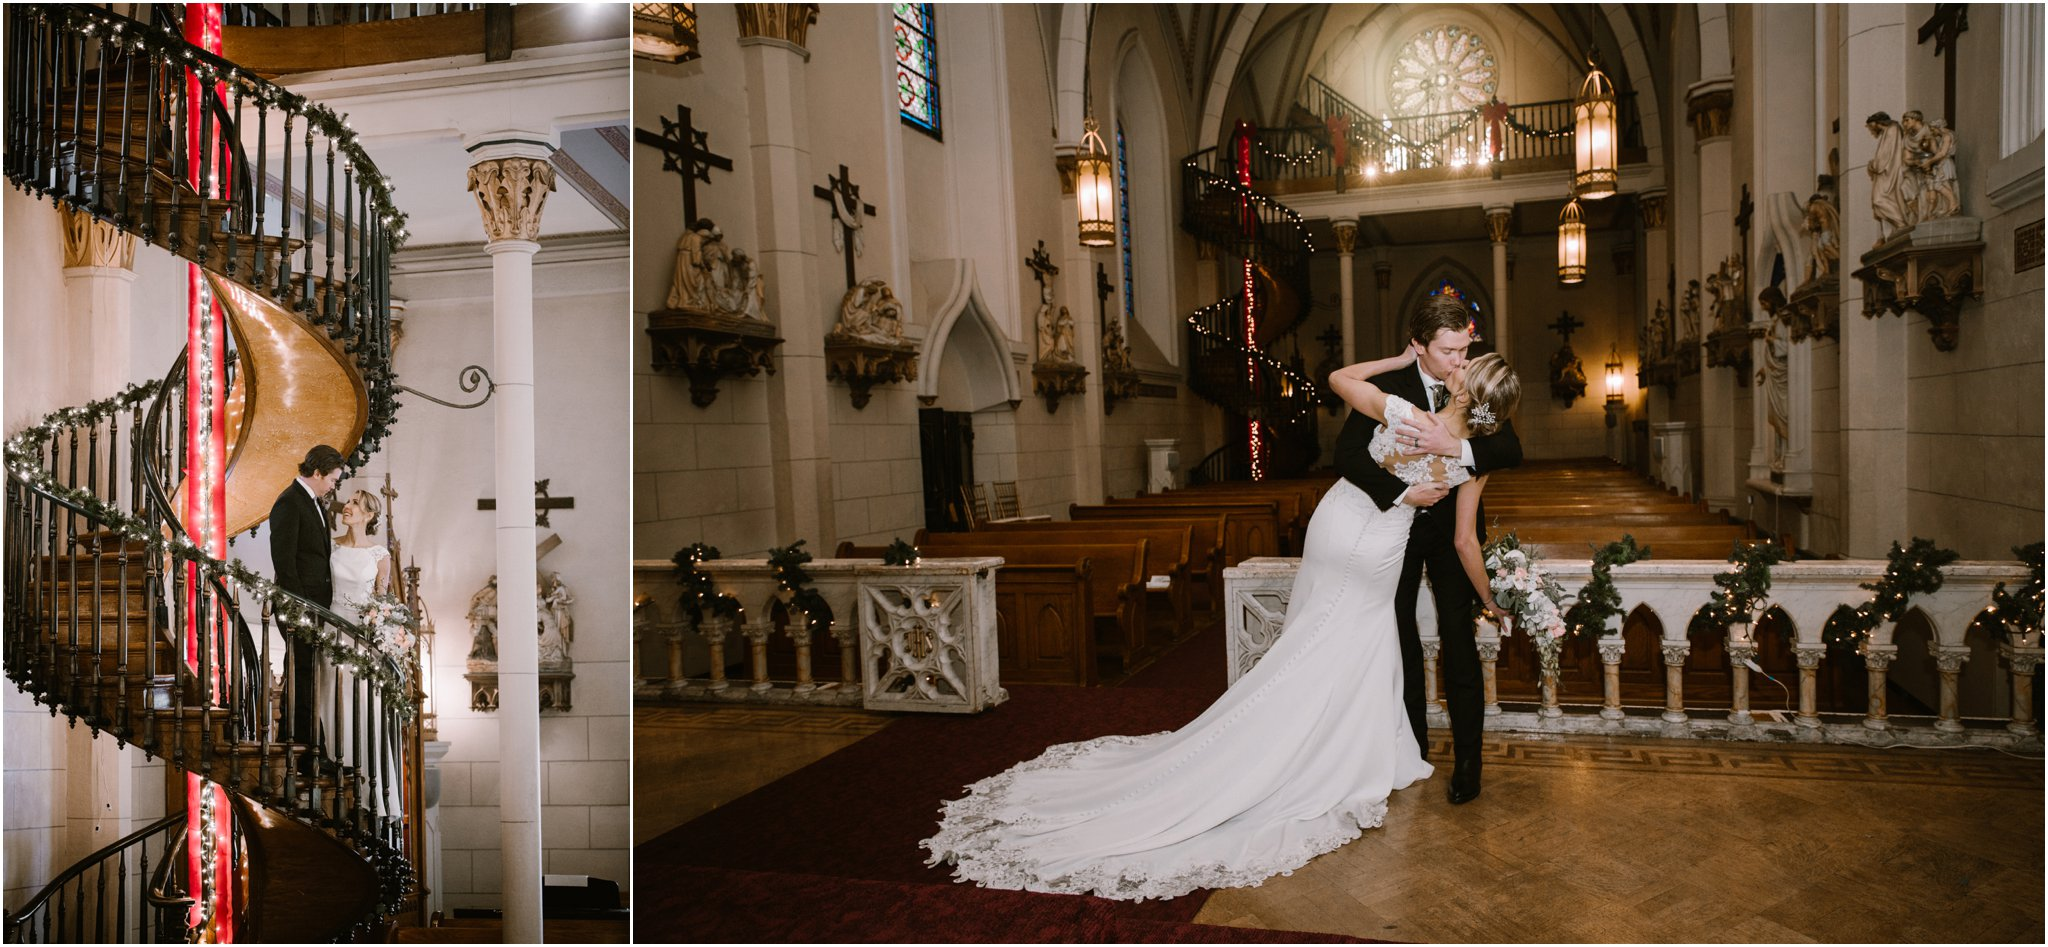 0921Loretto Chapel Wedding, Inn and Spa at Loretto wedding, Santa Fe wedding photographers, blue rose photography